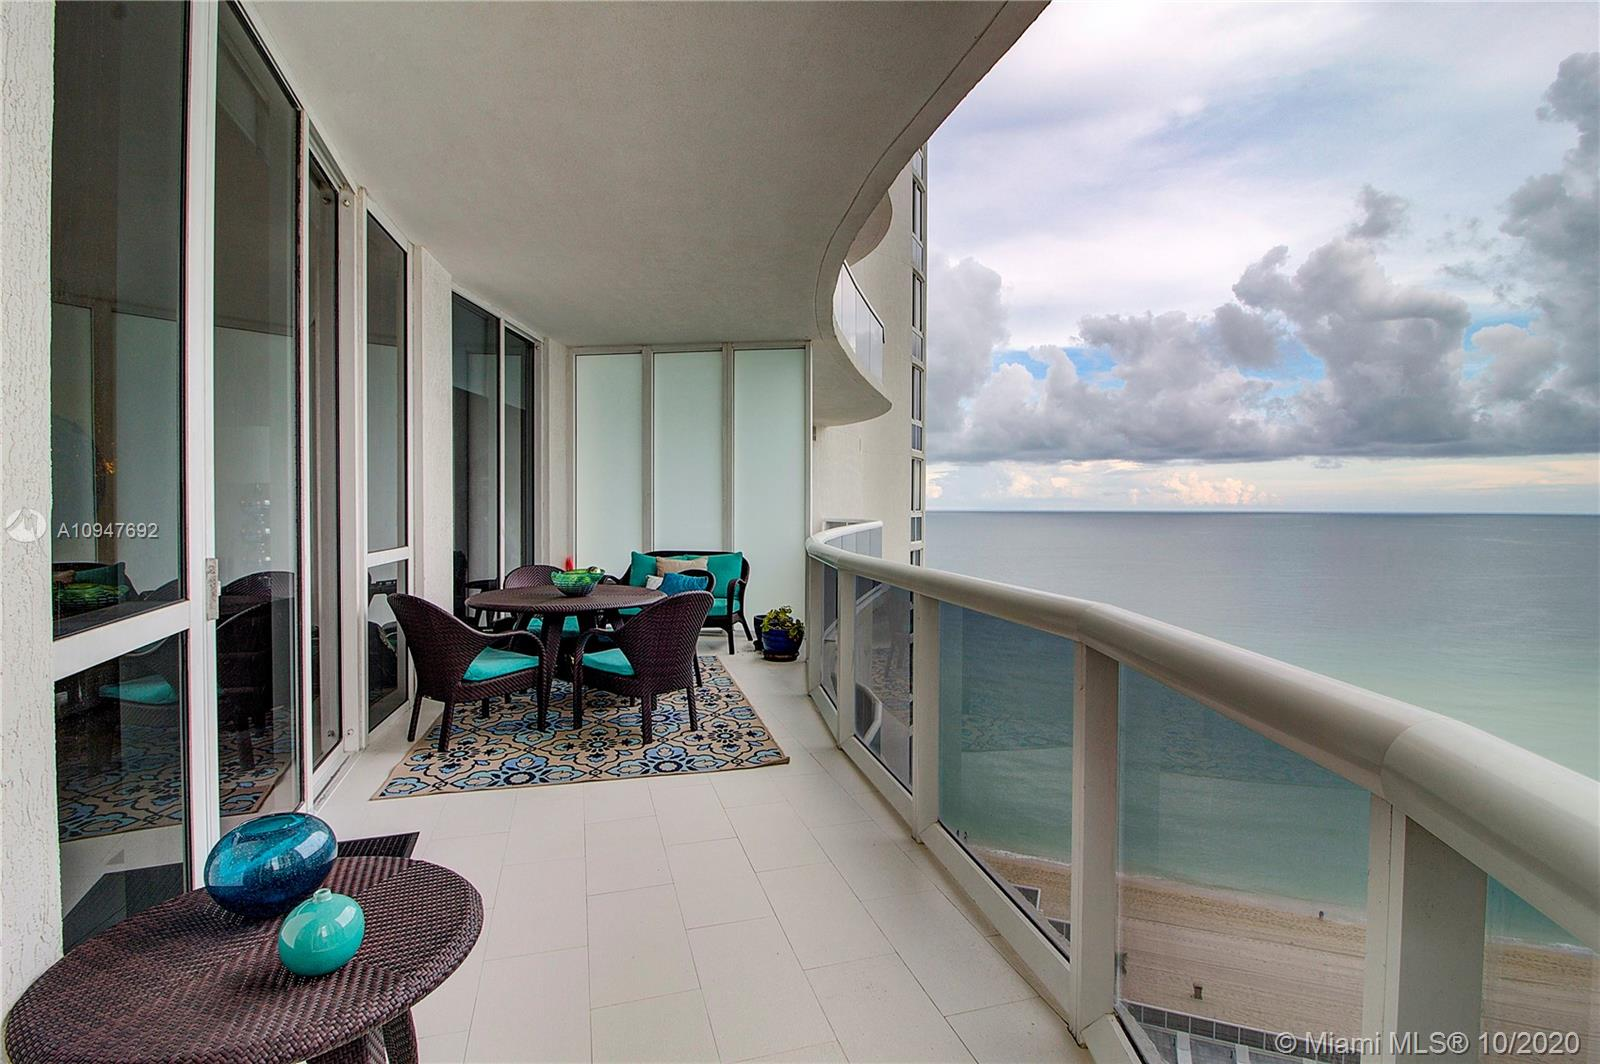 Beautiful 3 Bedrooms/ 3 Bathrooms Ocean Front Unit in Trump Tower II Sunny Isle, walking distance to shops, restaurants and supermarkets.   The unit is loaded with upgrades such as high end Subzero Refrigerator, Bosh oven and stove, Granite tops and much more.  Breathtaking views to the Ocean and intracoastal.  the unit sits on the 12th floor with a PRIVATE elevator and hallway.  Lots of space in this 2106 sq ft apartment.  The building very well maintained.World class amenities including a full service restaurant as well as Beach service.  ASKING PRICE IS FIRM WITH LITTLE TO NO ROOM FOR NEGOTIATION!